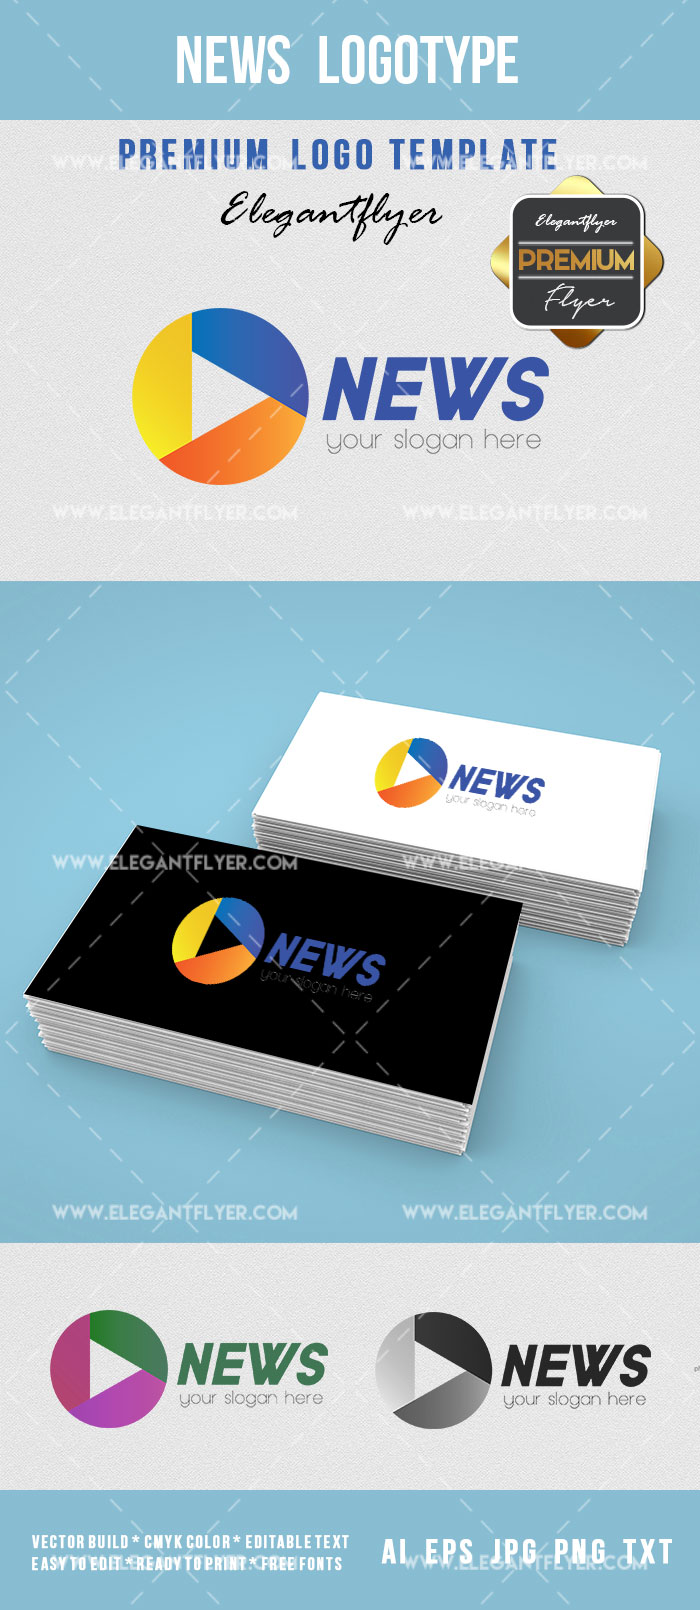 News Logotype Pintable Template